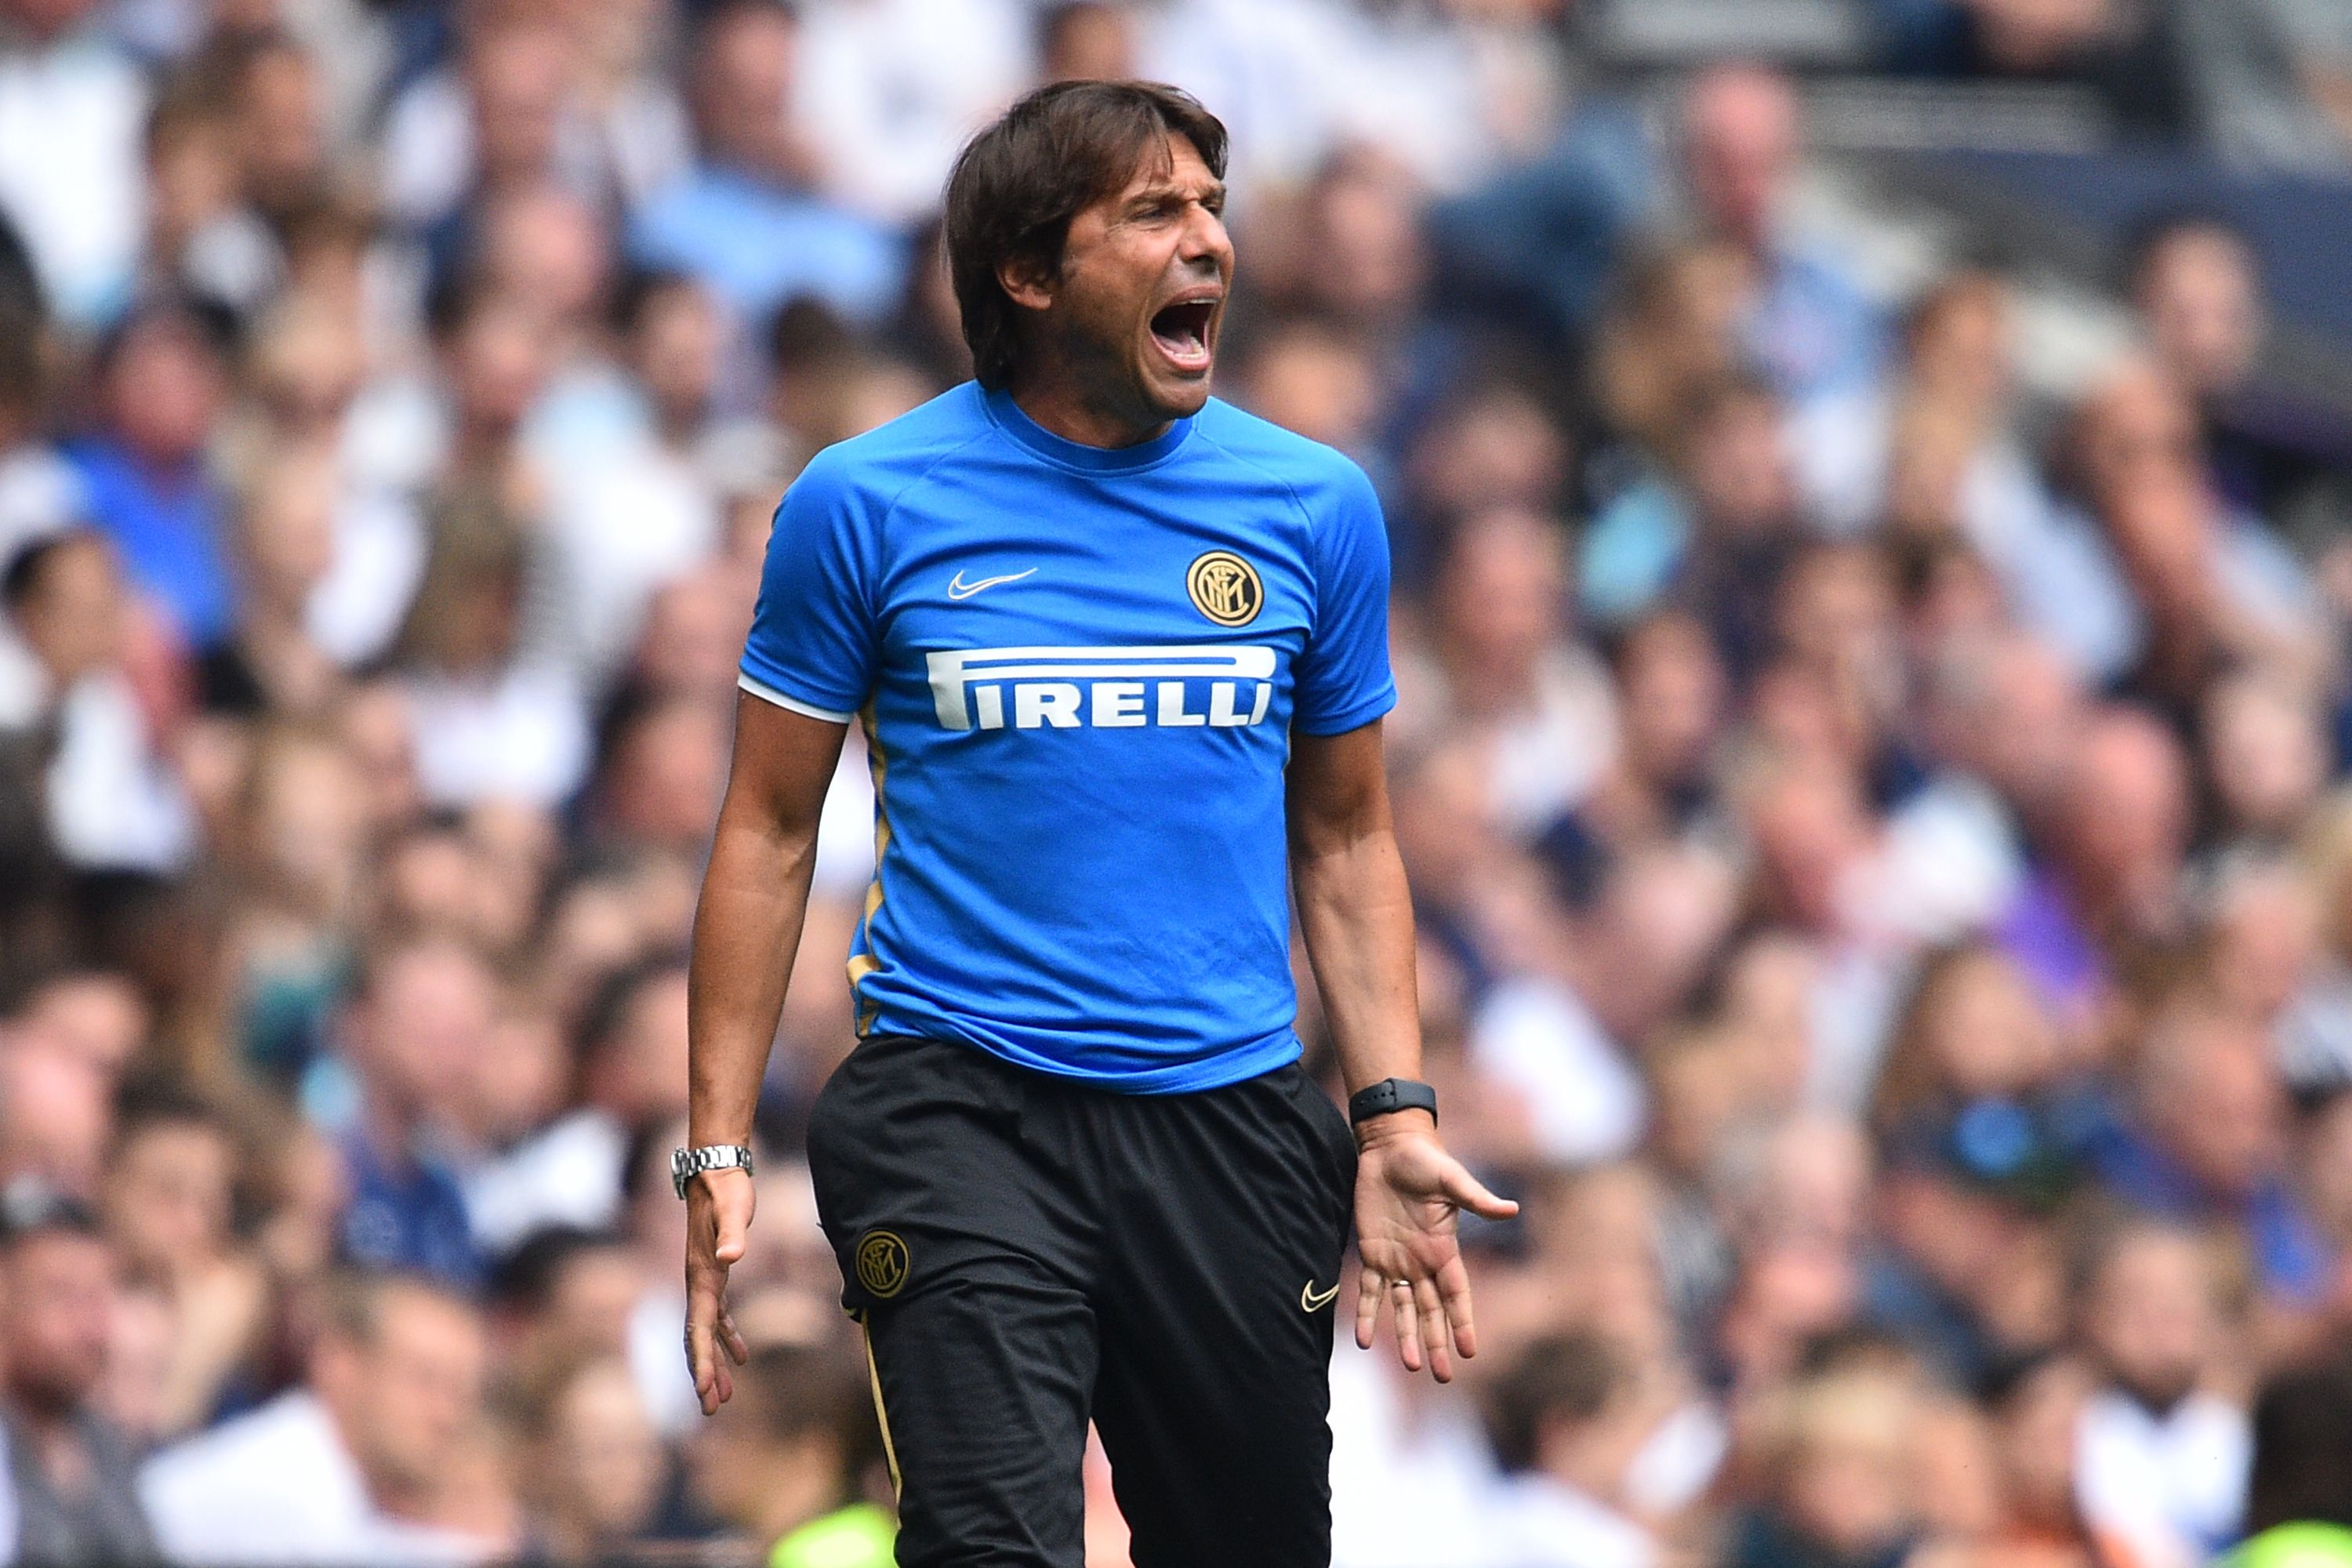 Antonio Conte and Inter's next step